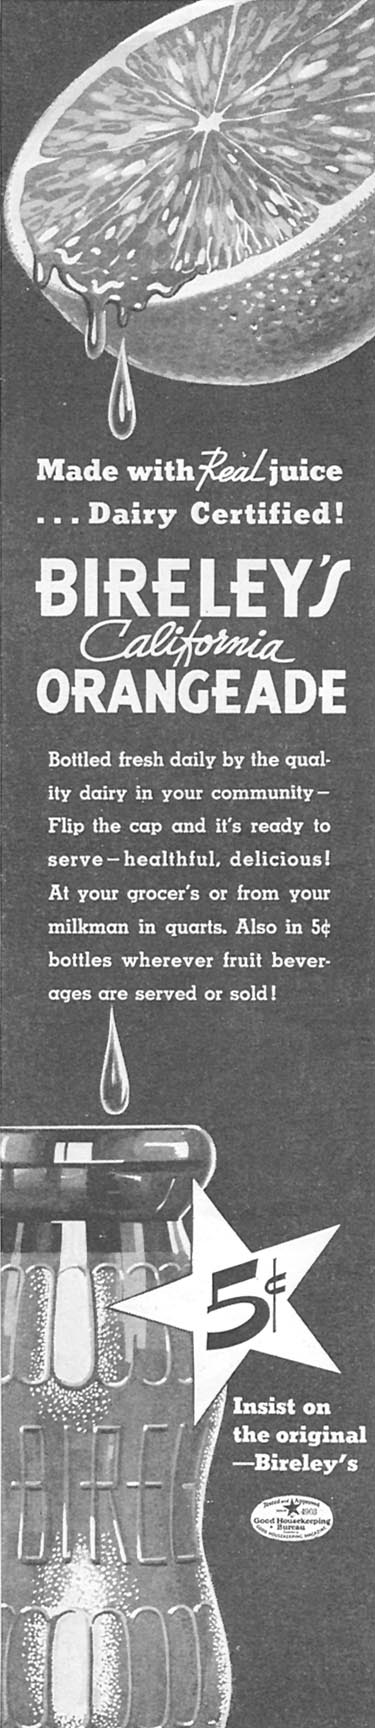 BIRELEY'S CALIFORNIA ORANGEADE